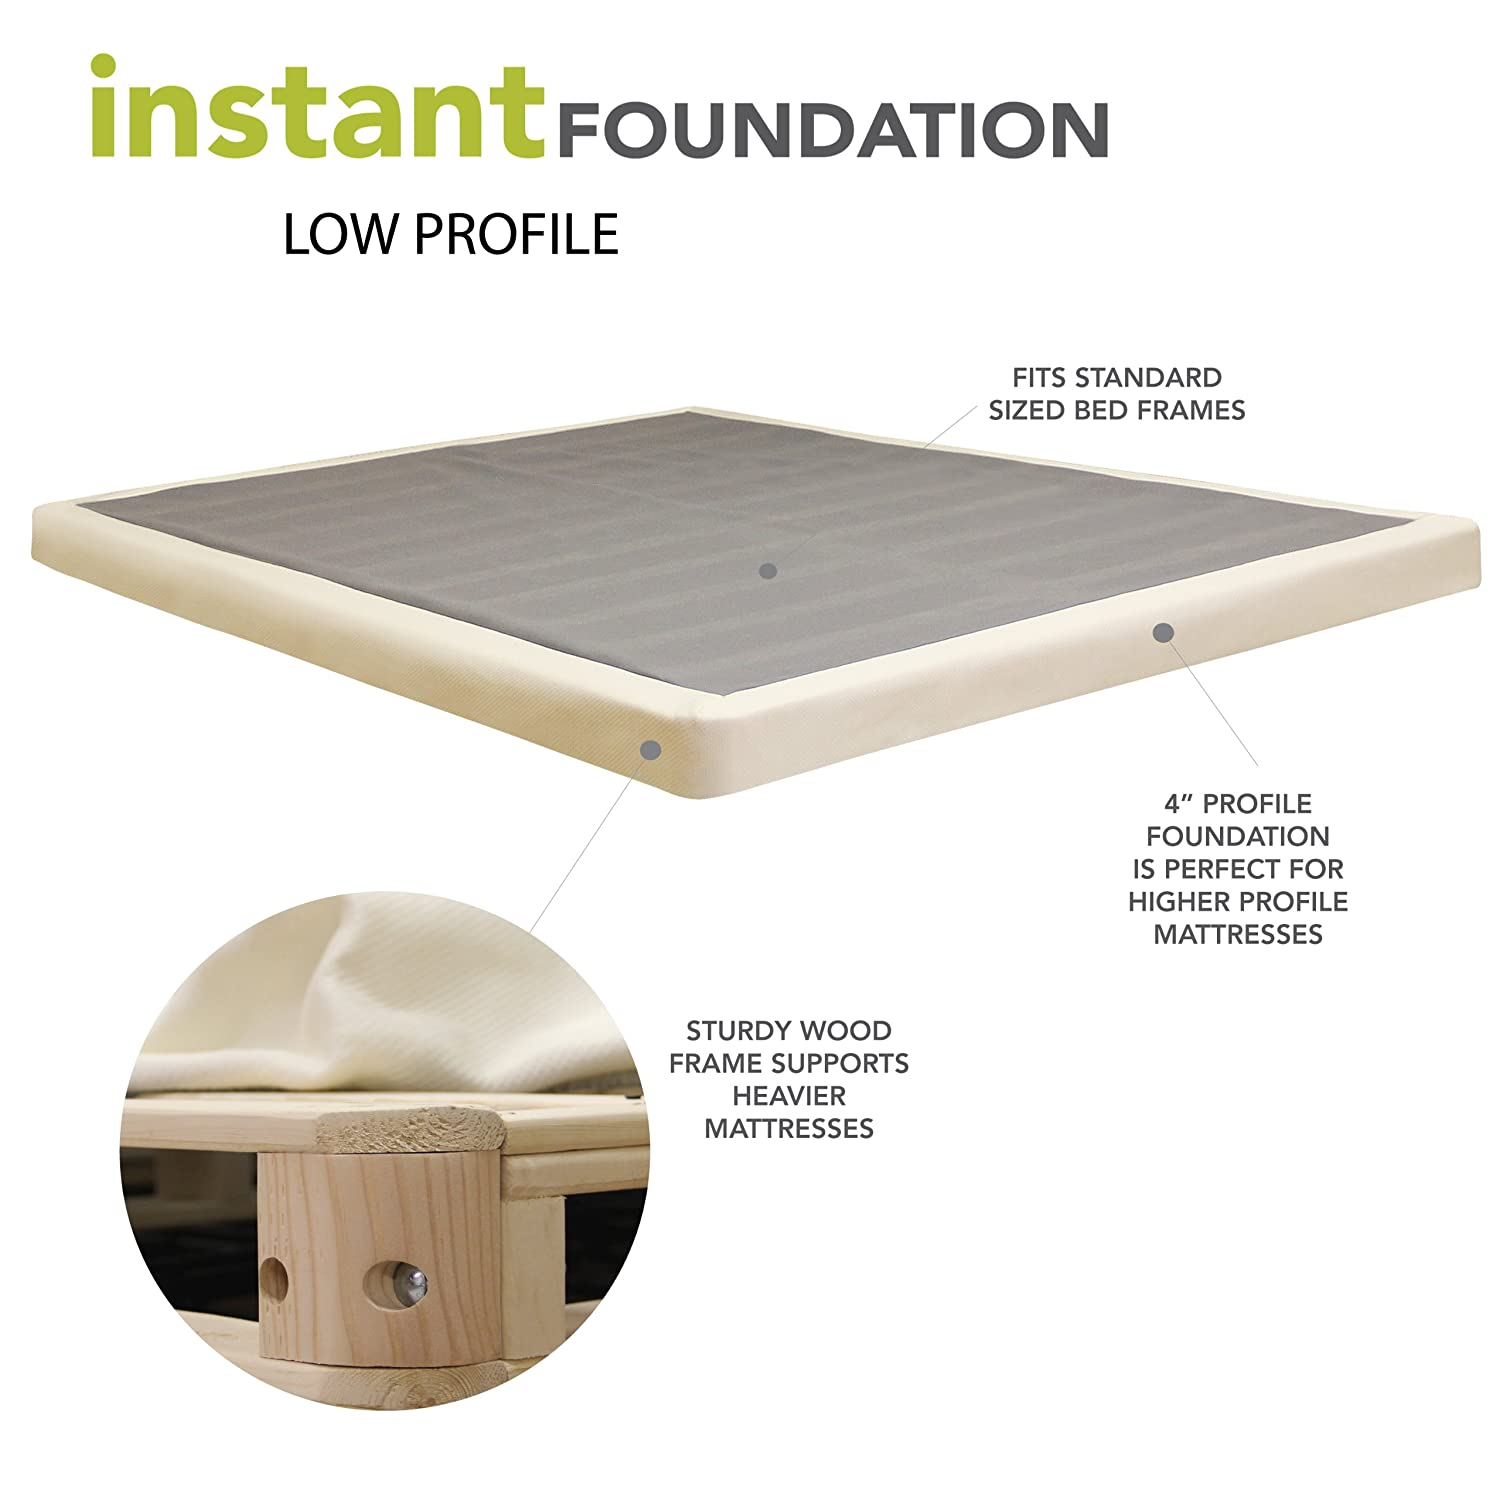 Classic Brands 4 Inch Instant Foundation Low Profile Foundation or Box Spring Replacement